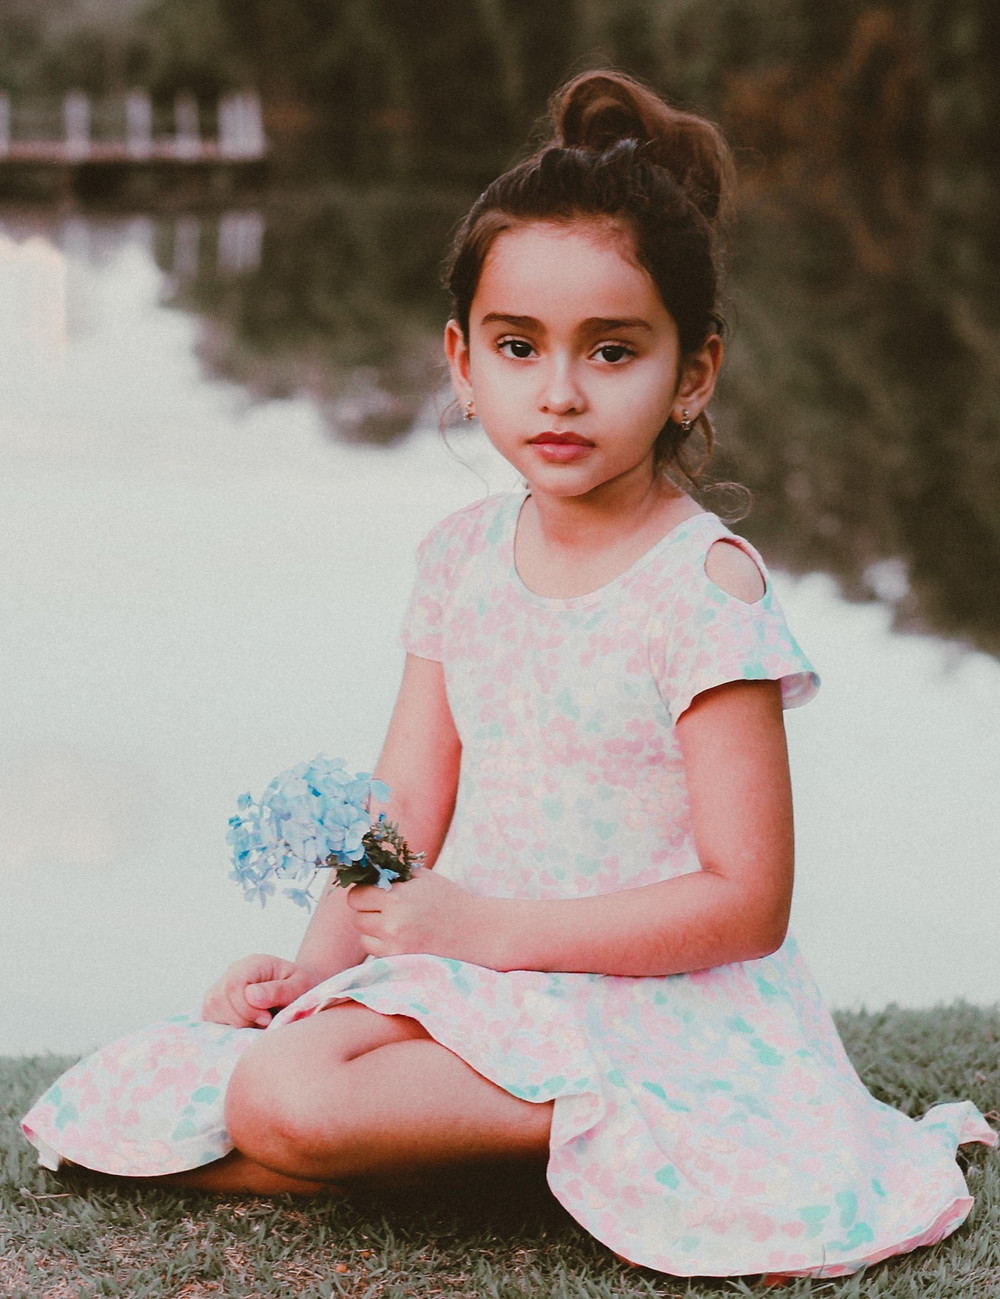 child model posing with flowers, unhappy face.